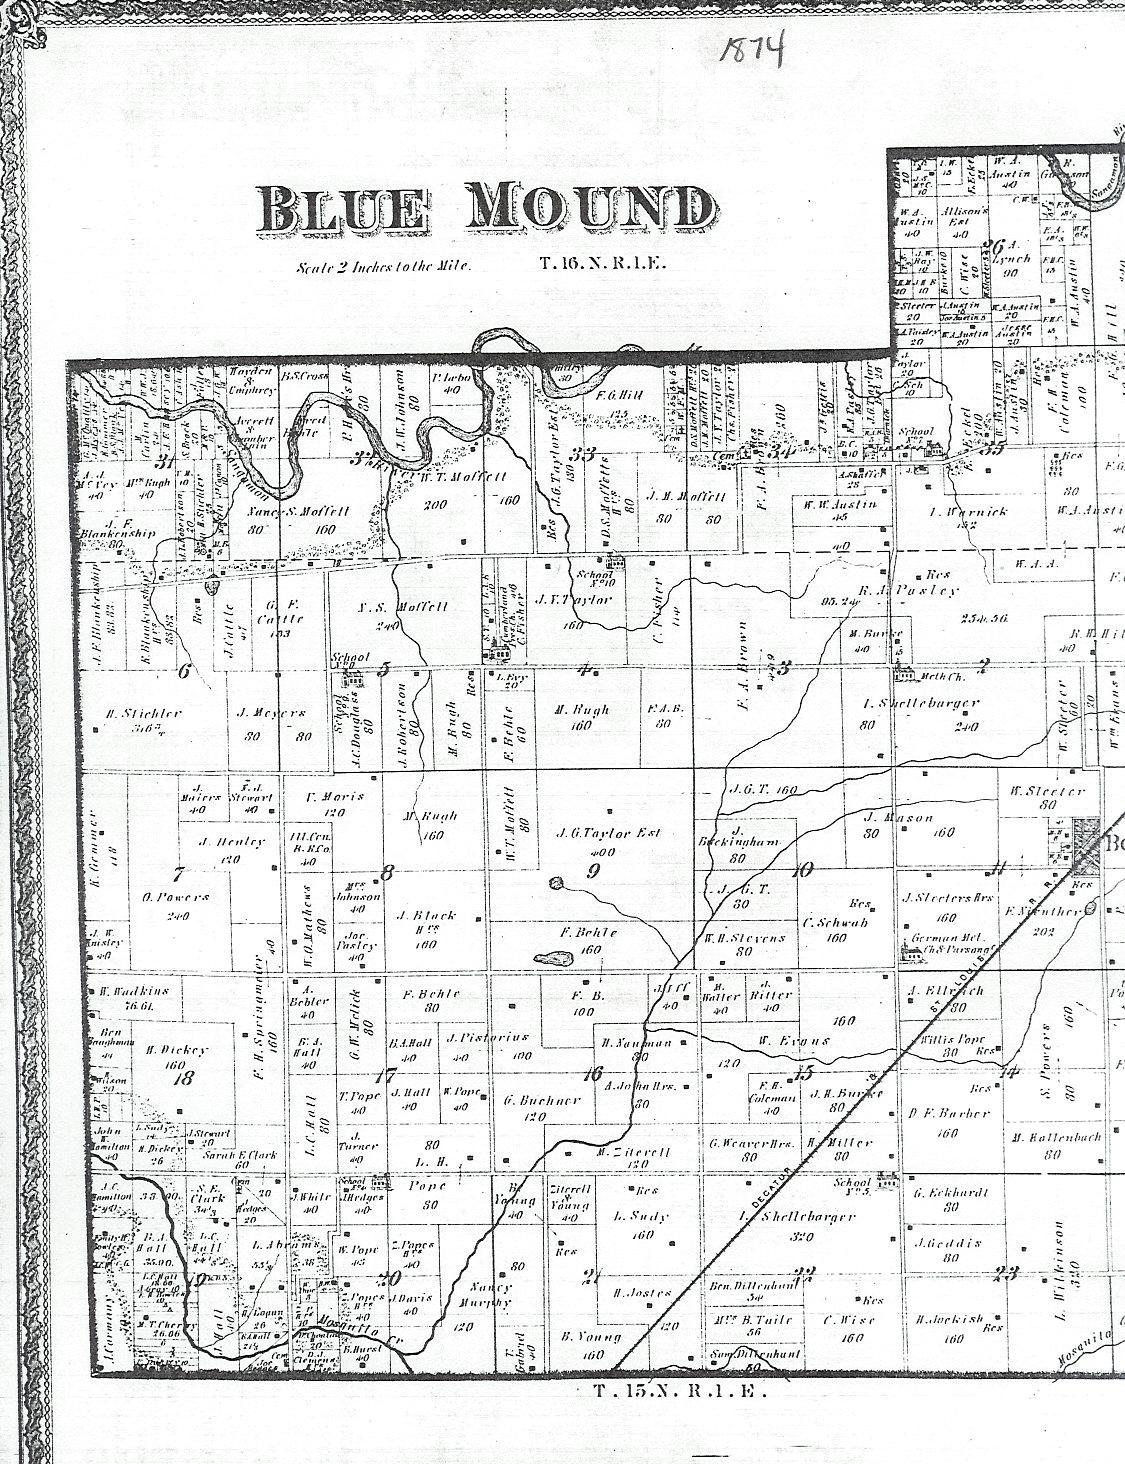 they may show individual lots with names of lot owners i have found plat maps in both family history centers and county courthouses